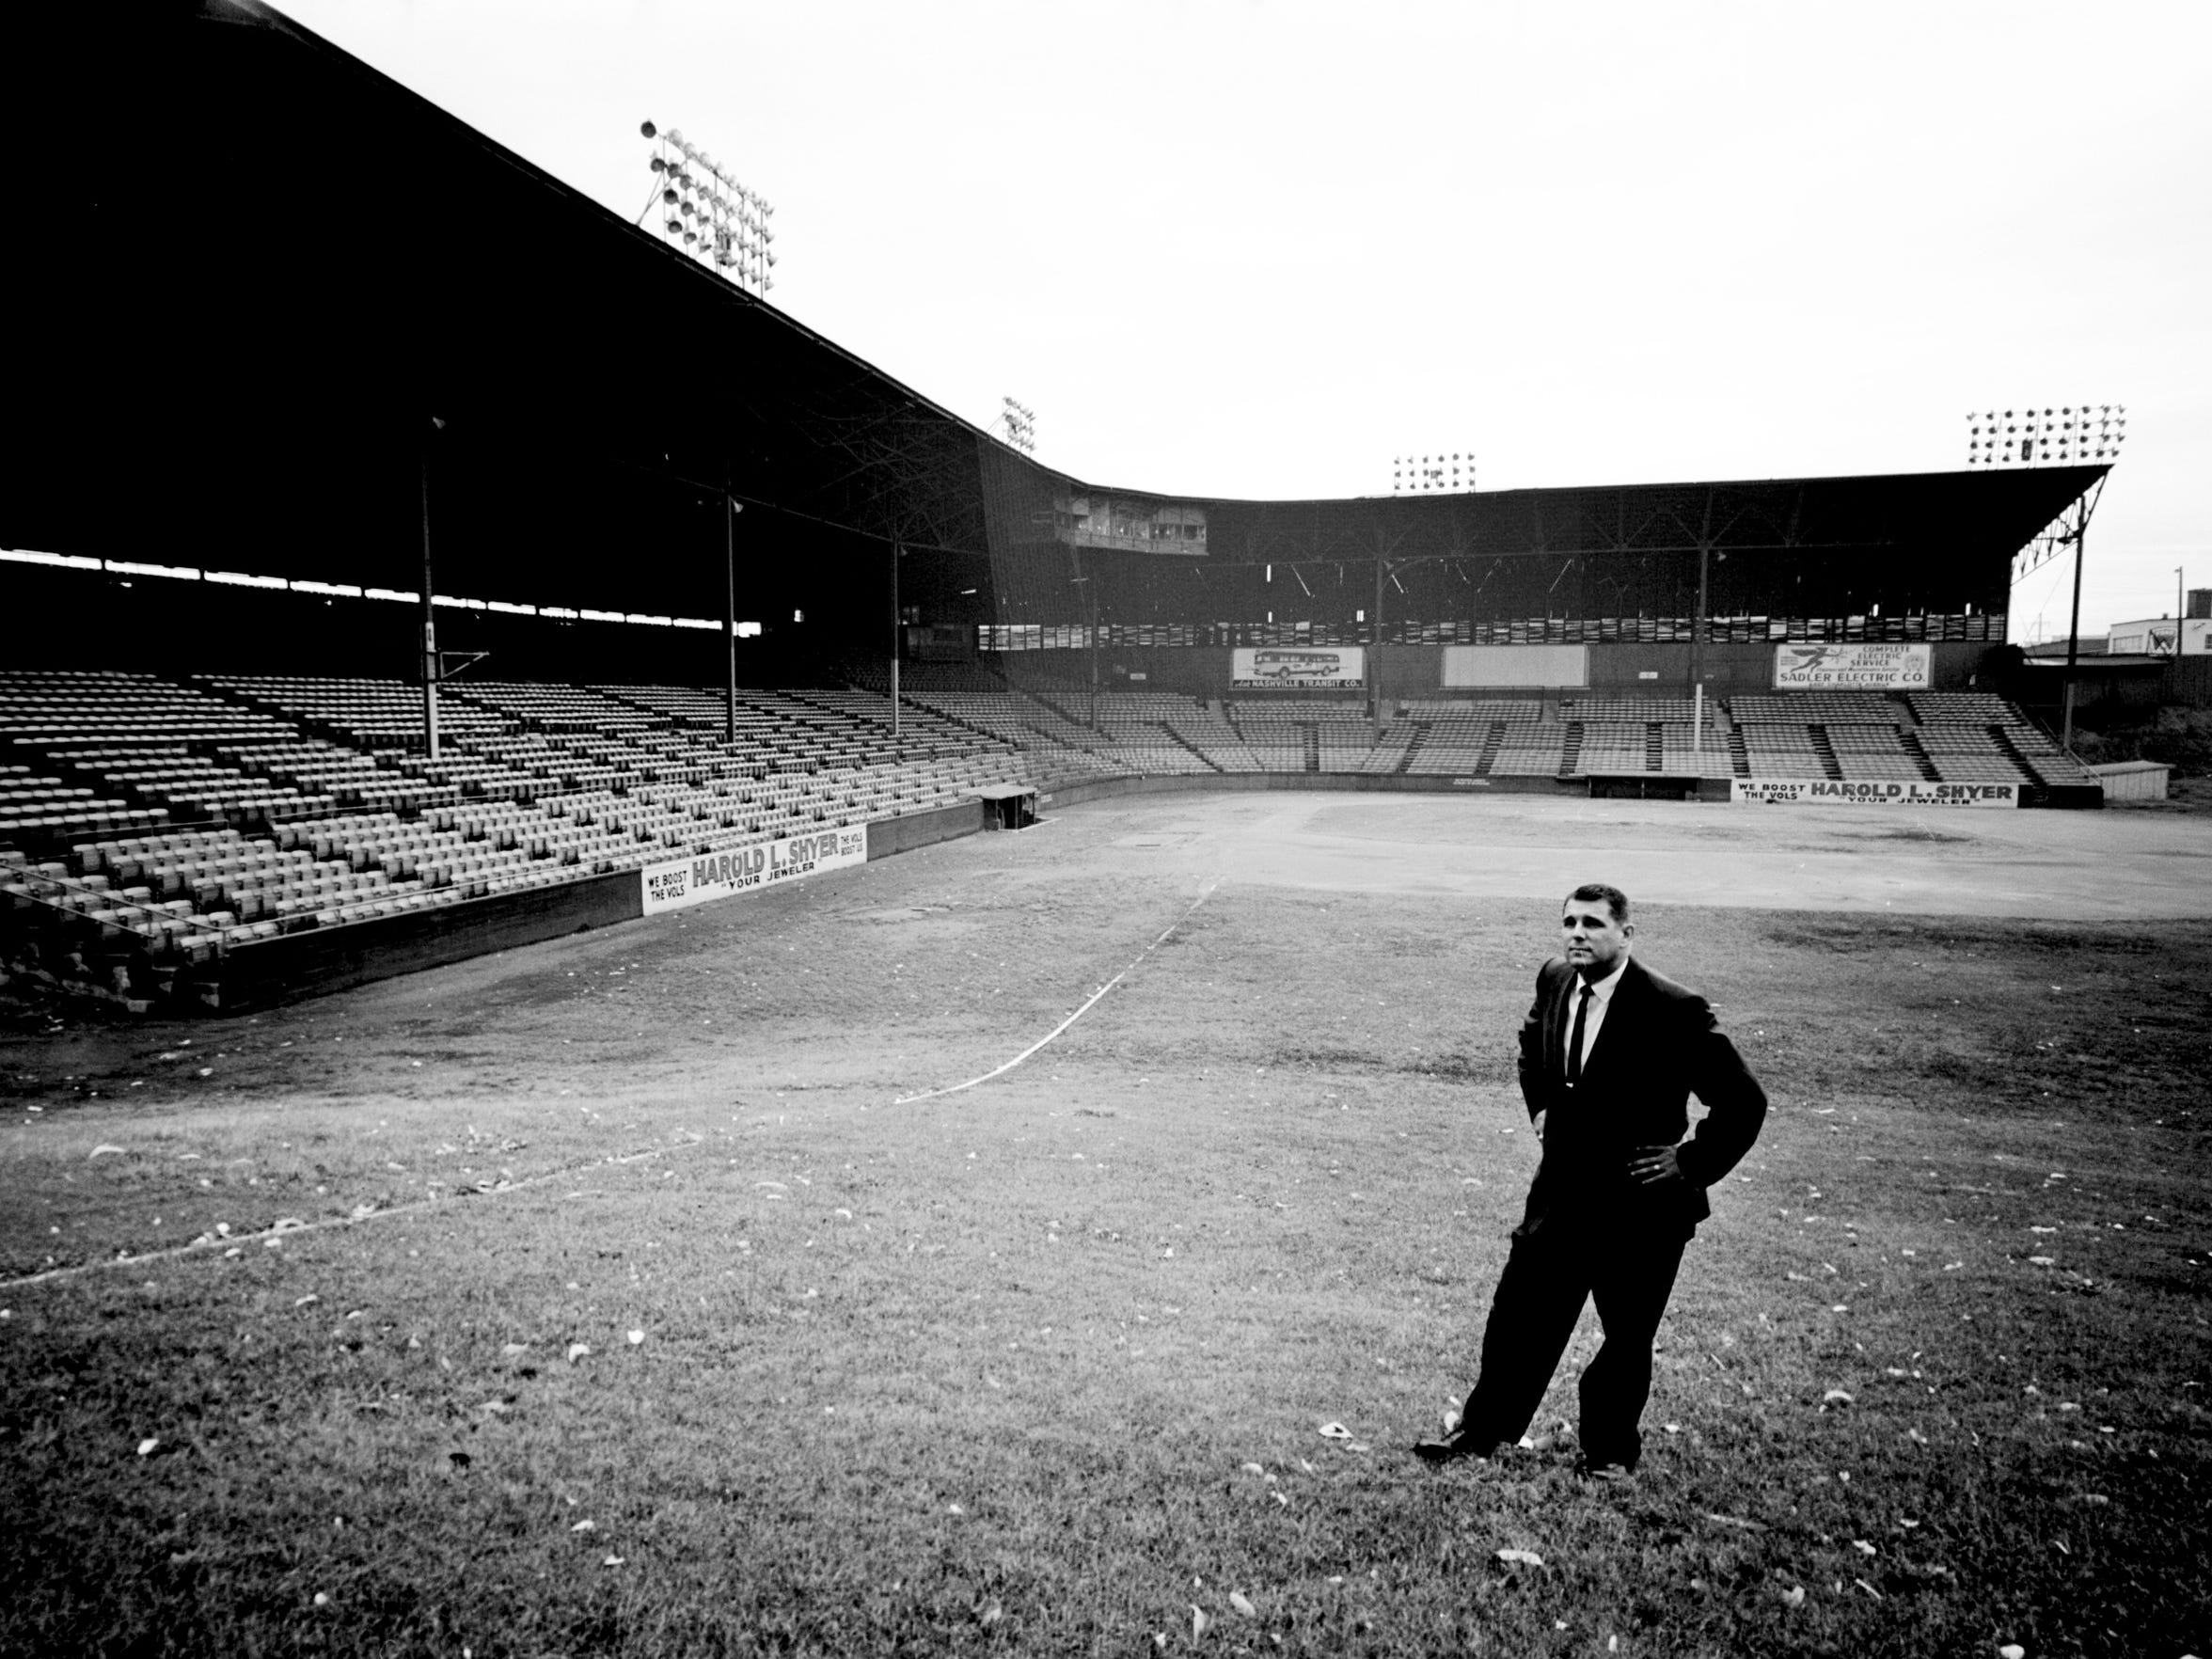 Nashville Vols General Manager Bill Harbour takes a long look at the famous right field screen of Sulphur Dell after learning Jan. 26, 1962 that baseball is dead in Nashville for the 1962 season. This will be the Dell's first year of idleness since 1901, the year that the Southern League was organized.